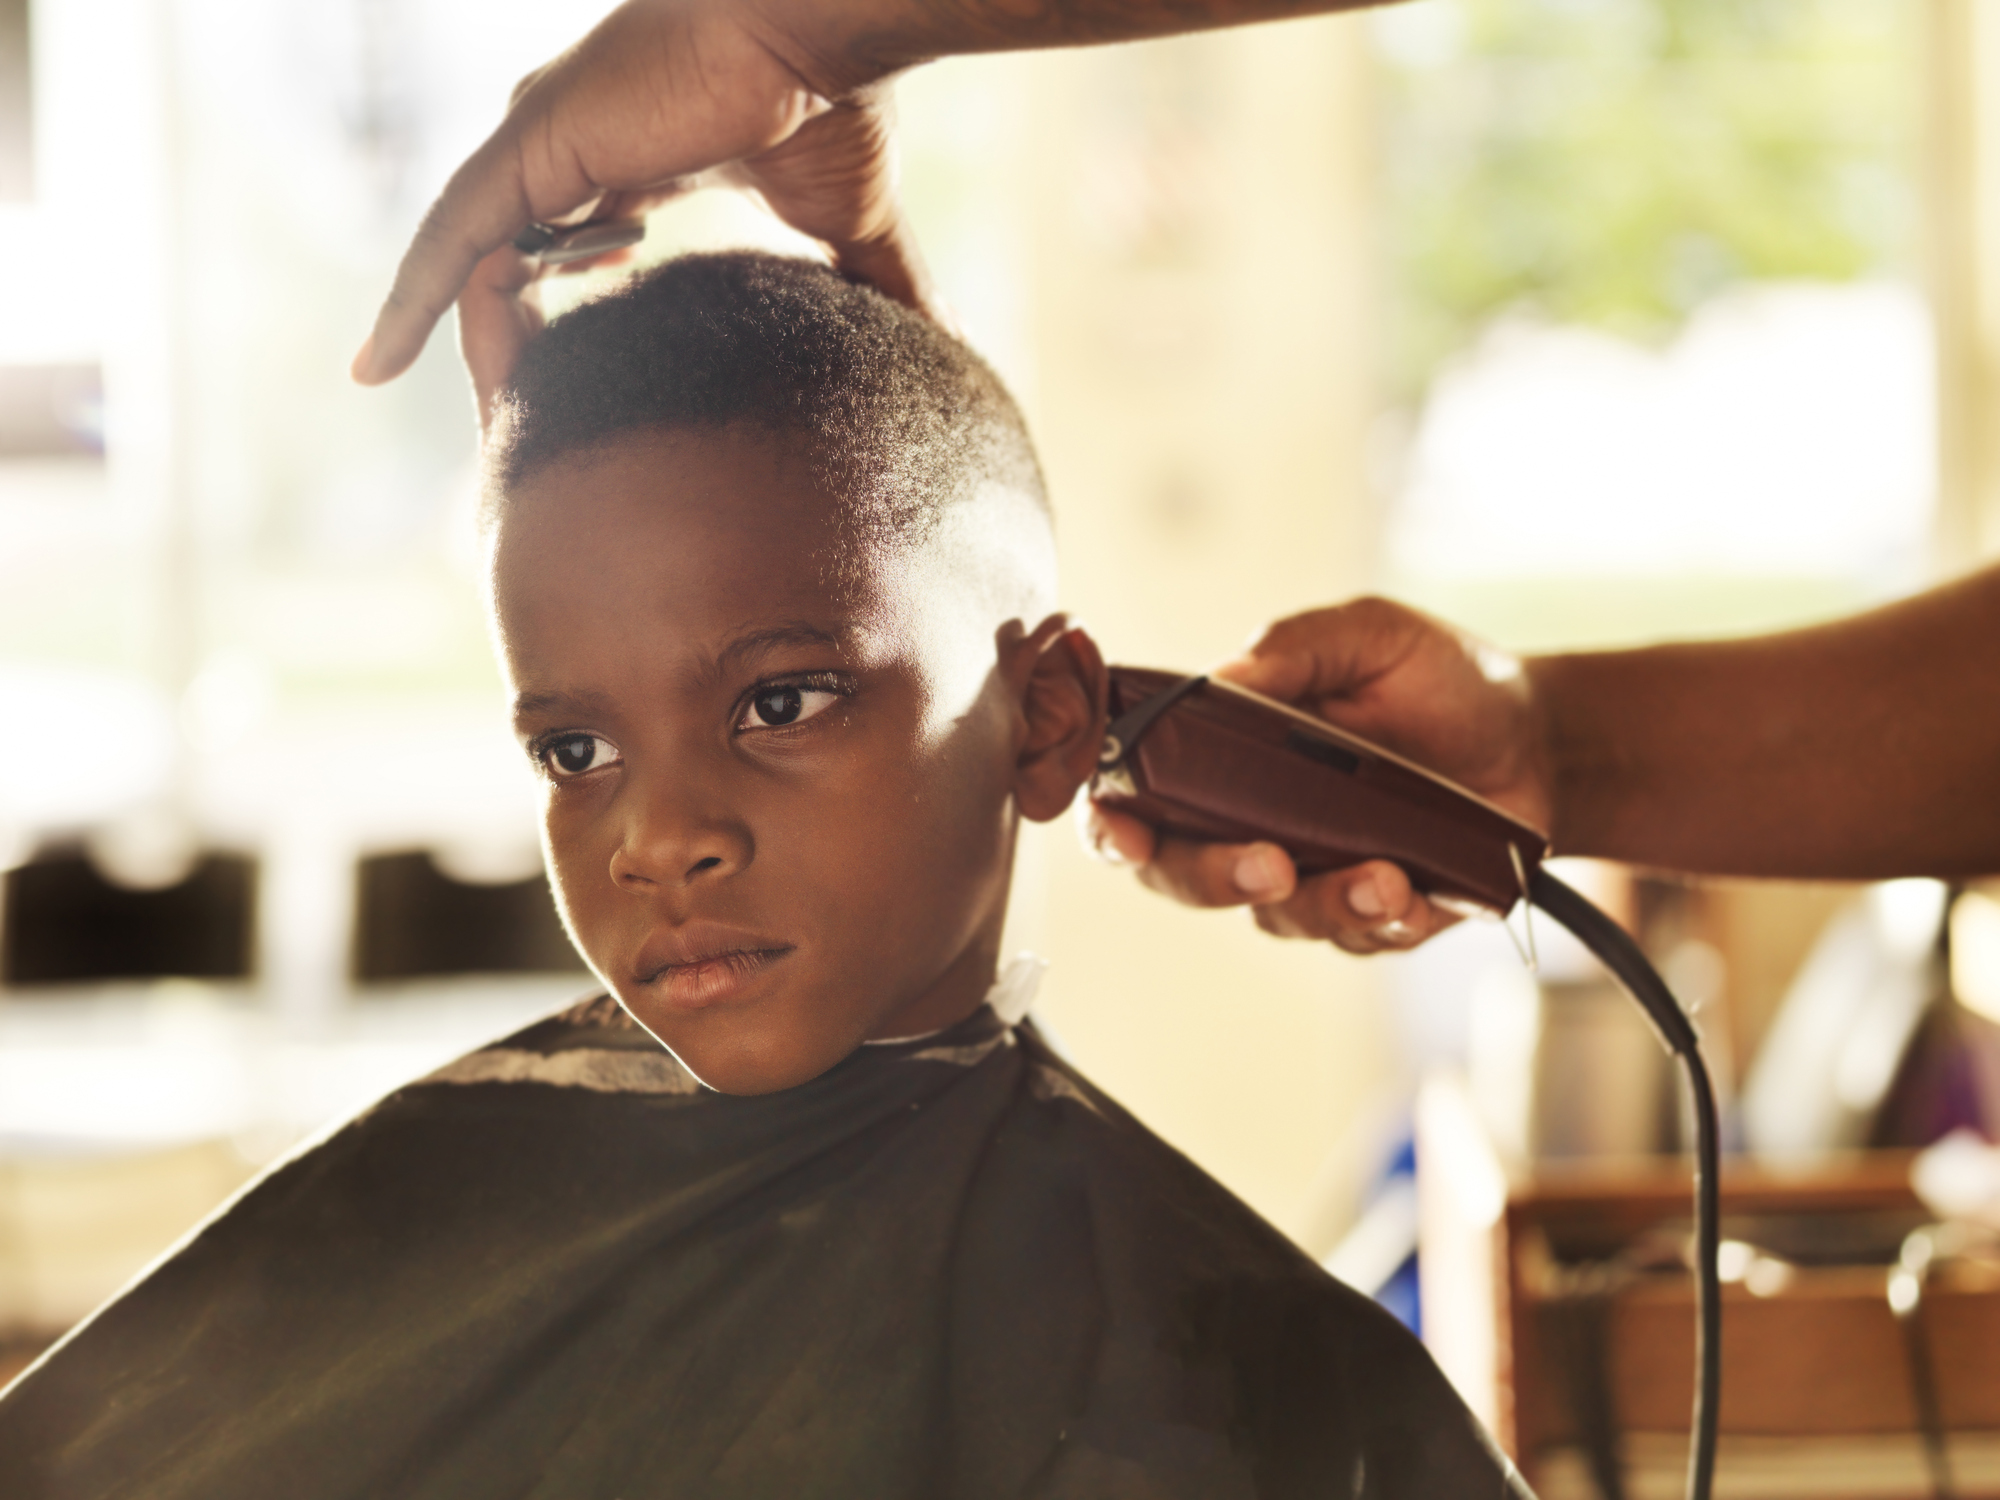 Caring for Your African-American or Biracial Childs Hair Caring for Your African-American or Biracial Childs Hair new pics